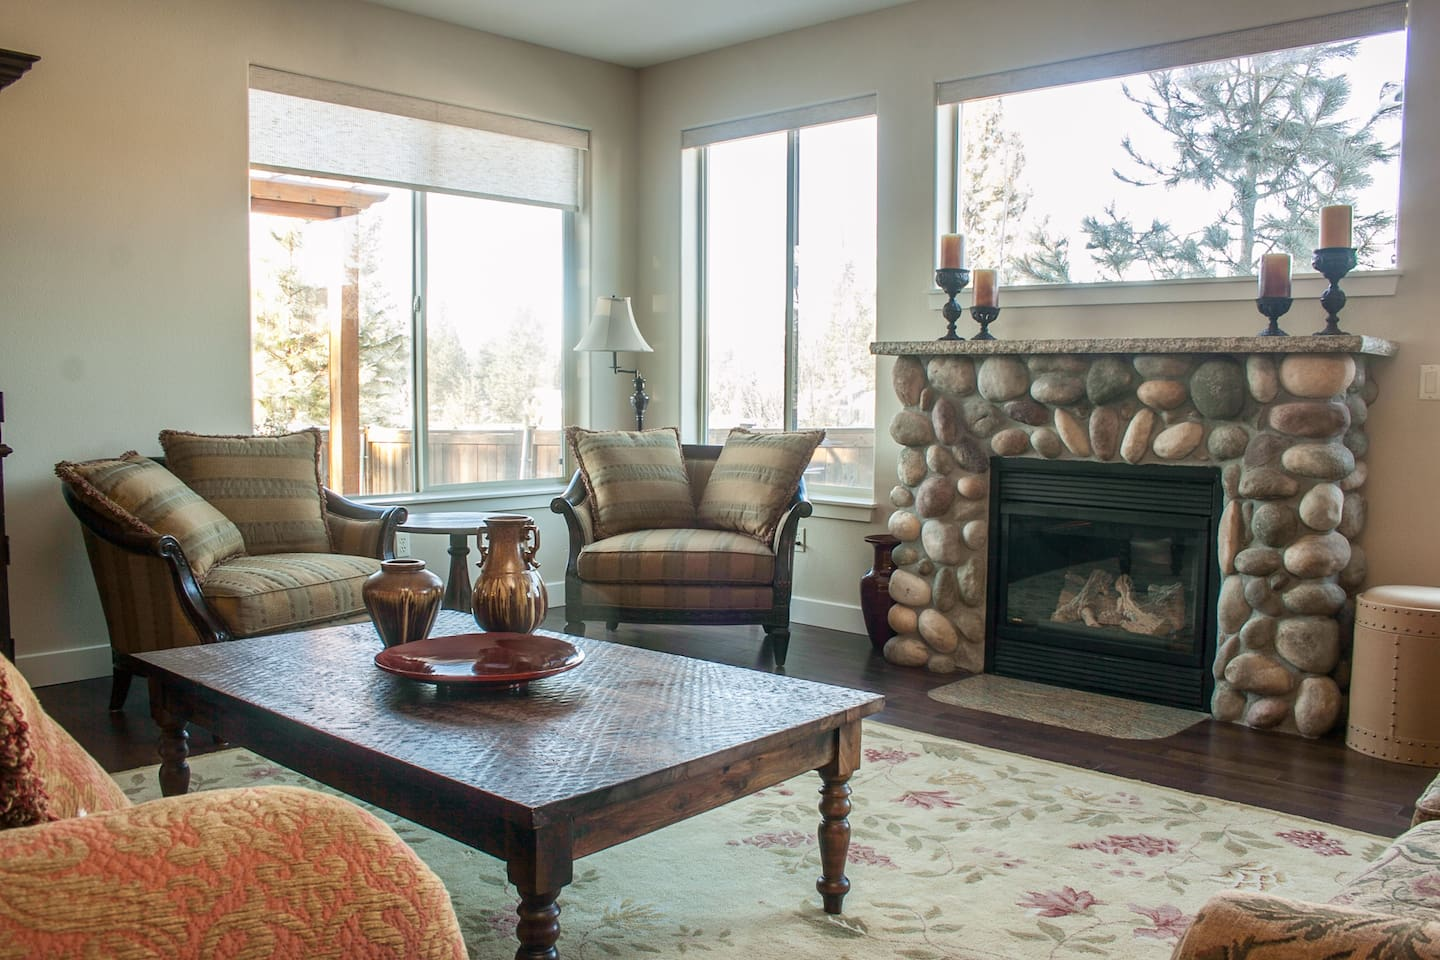 Gas fireplace and plenty of seating to enjoy time together